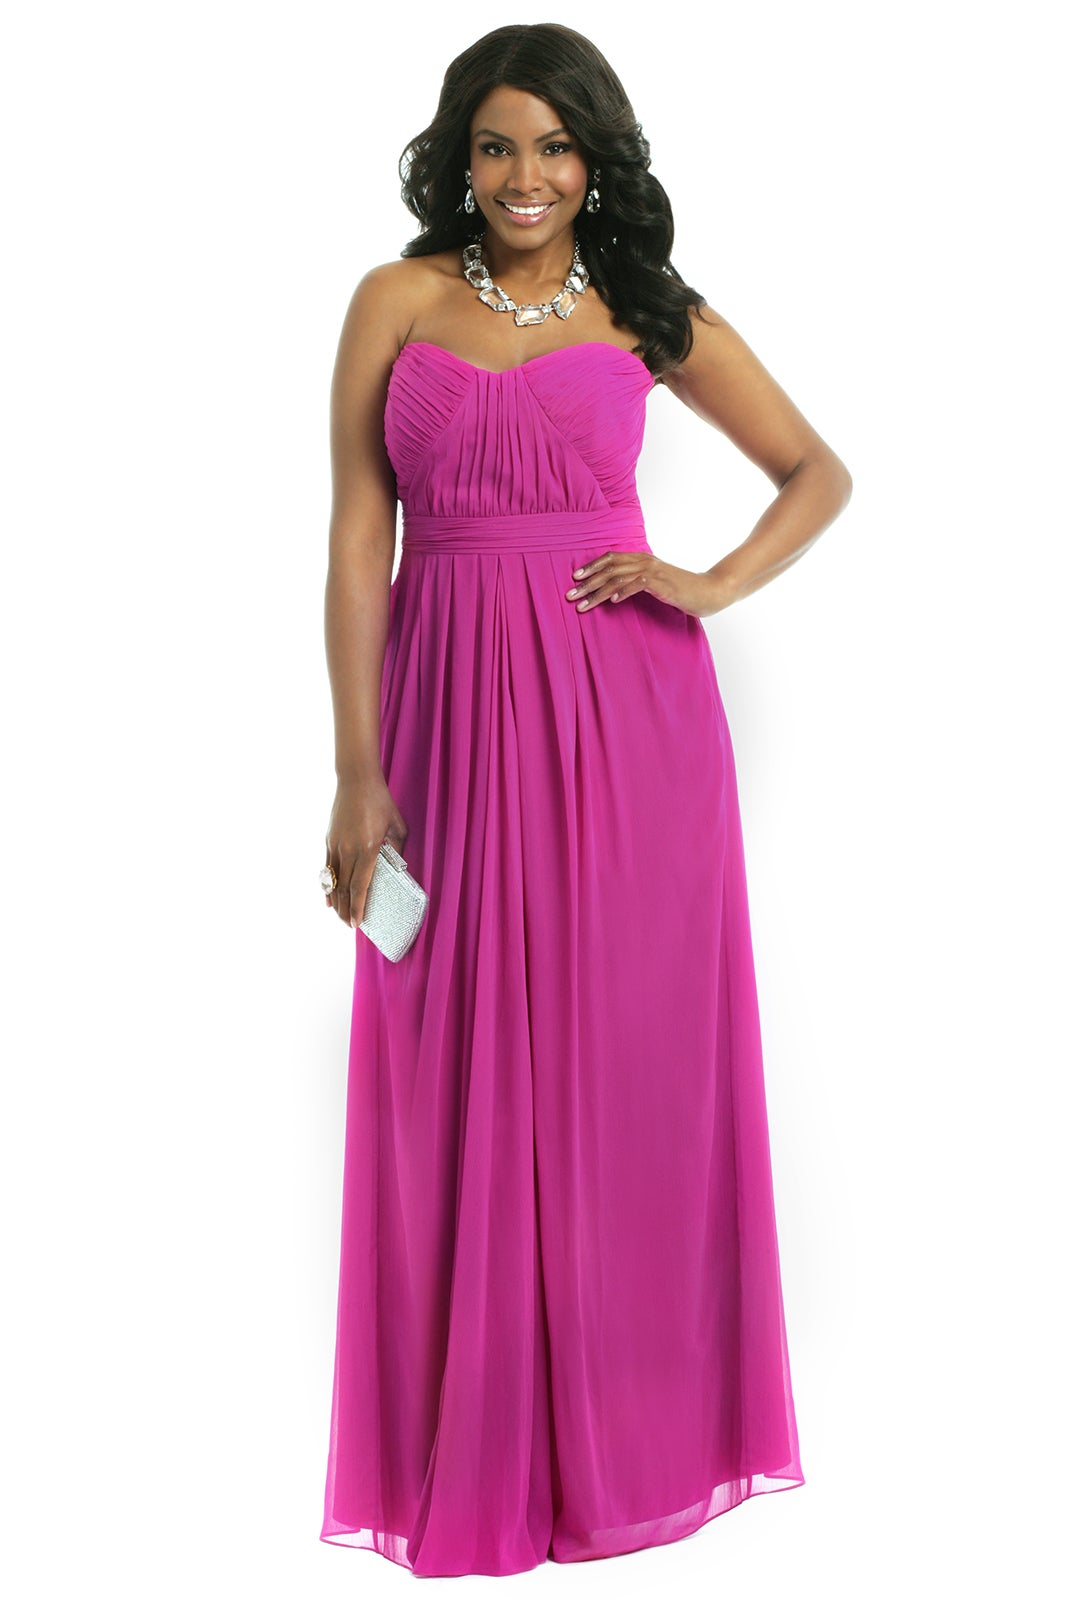 6e5058c927c0e Rent The Runway Plus Size - Formal Wear For Curvy Women